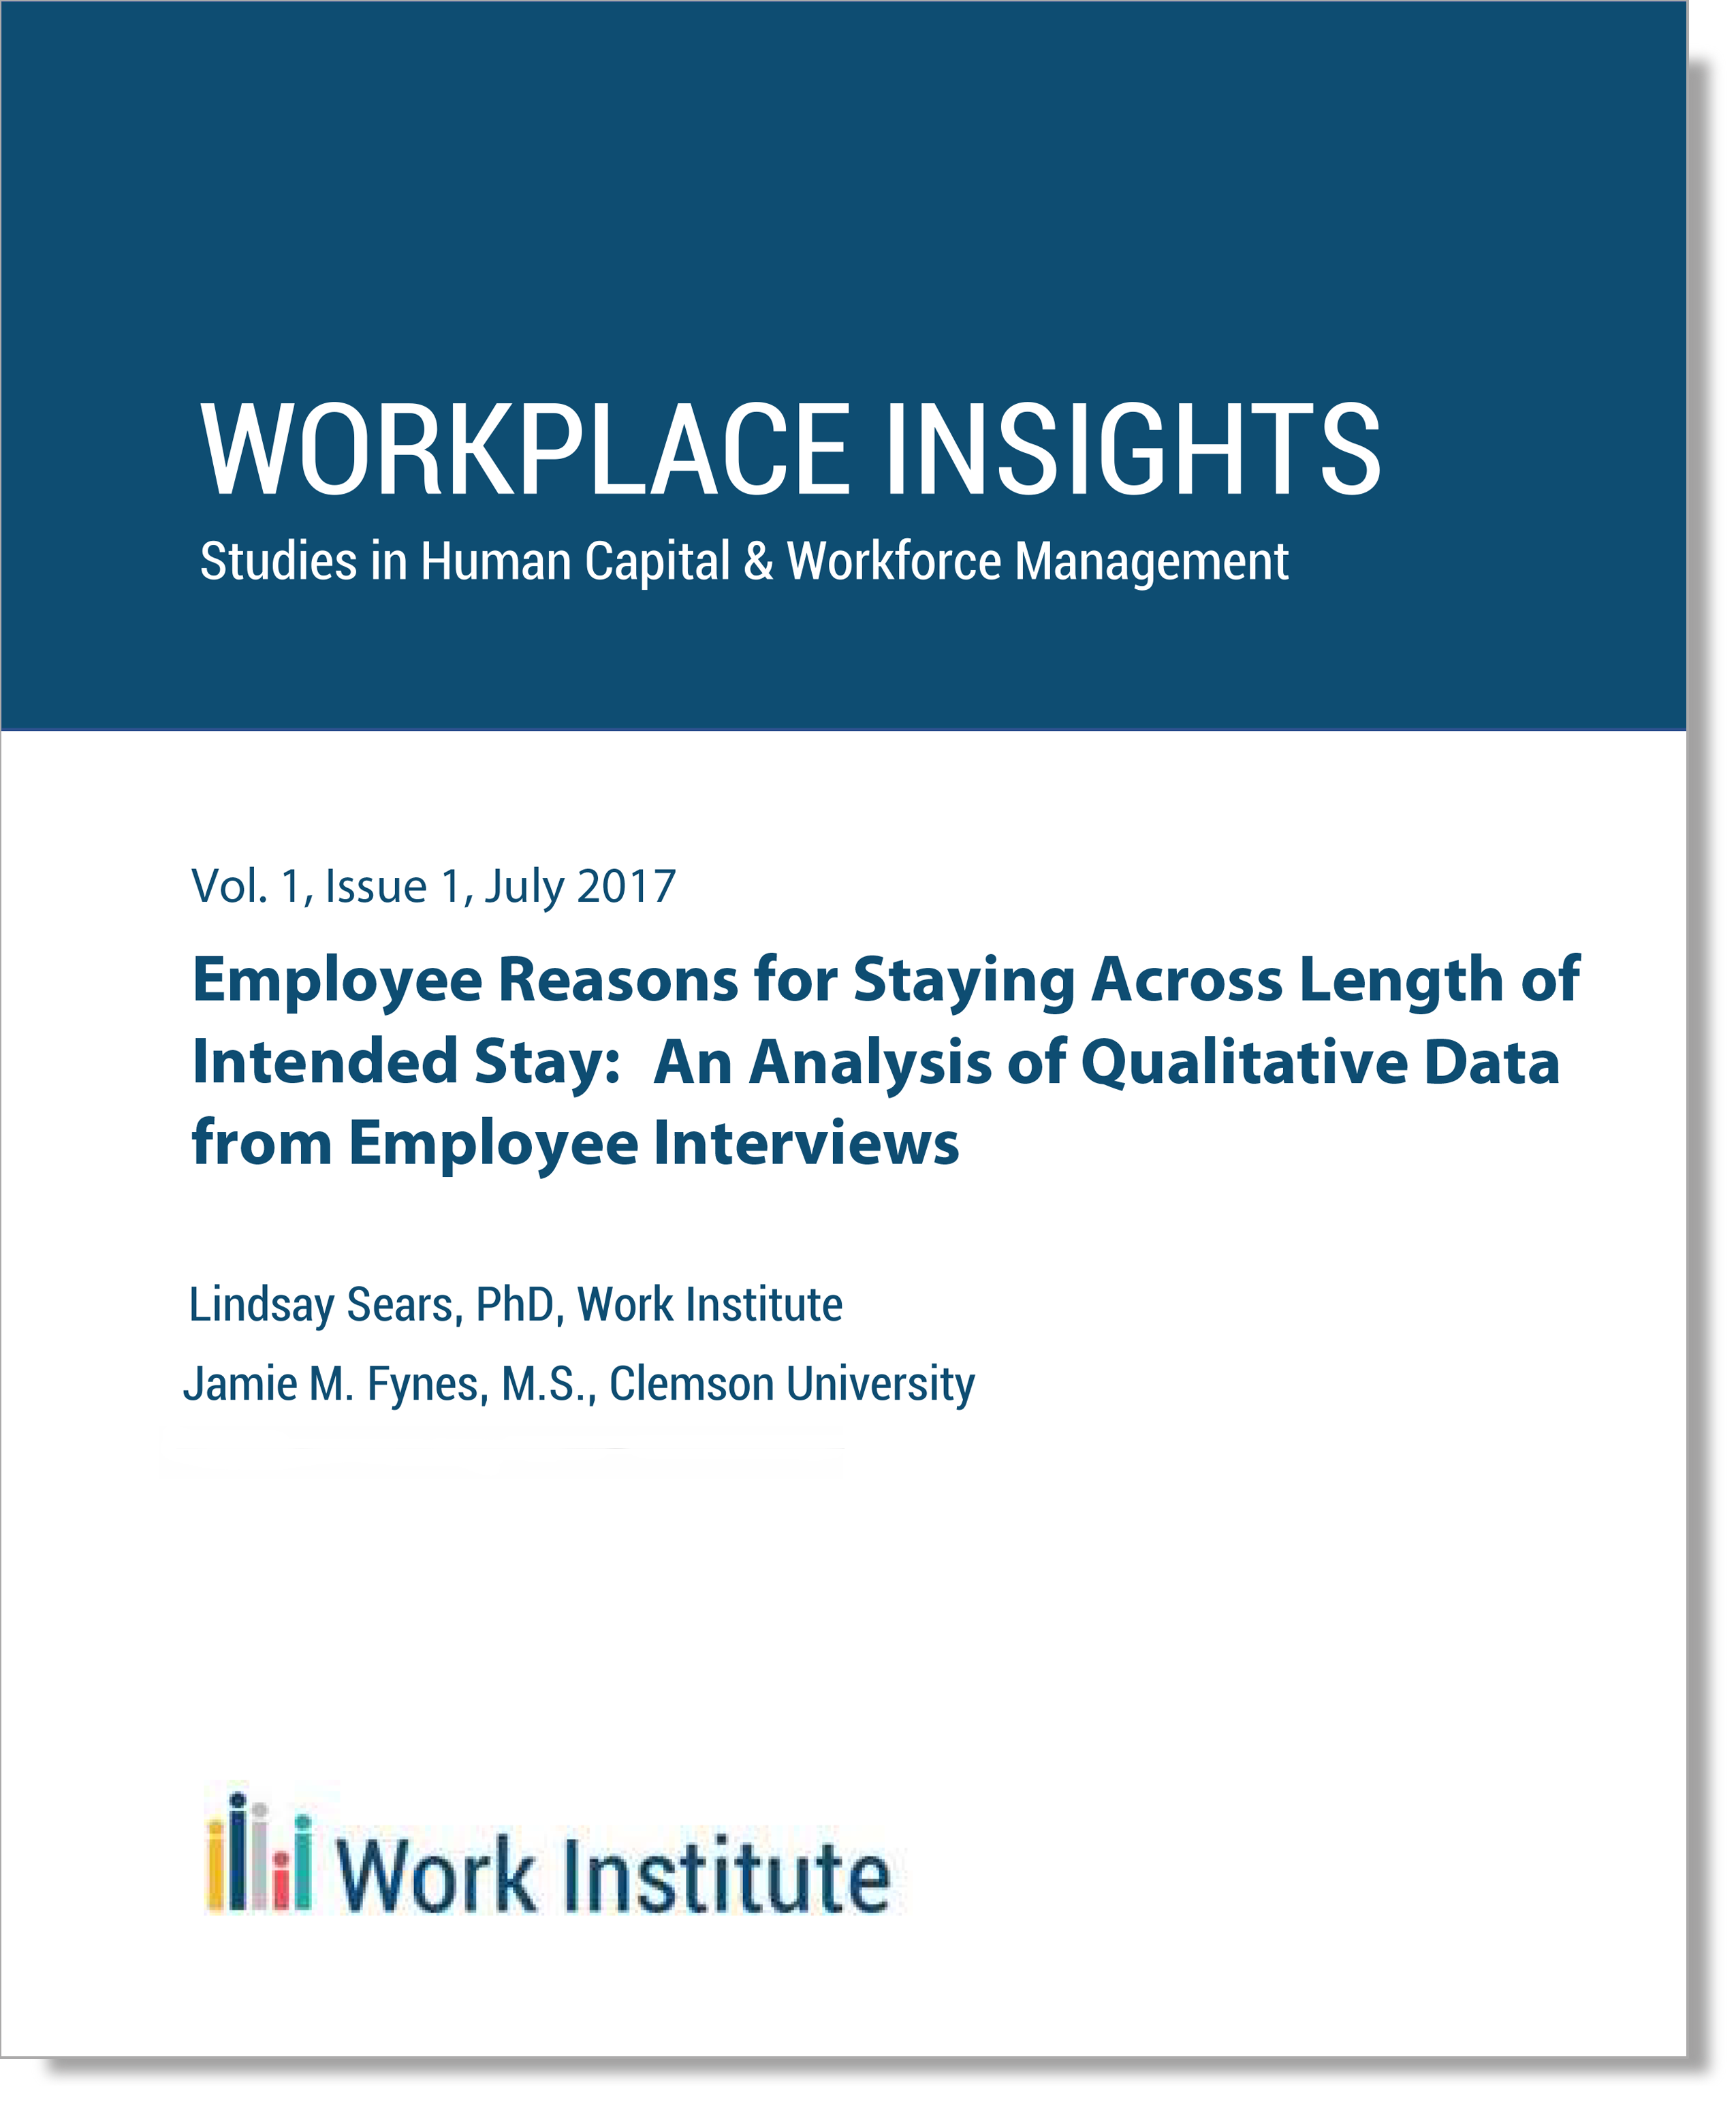 Workplace Insights-Vol01-Issue01-Reasons for Staying (Fynes&Sears)-2017-FINAL 7.21-1.png